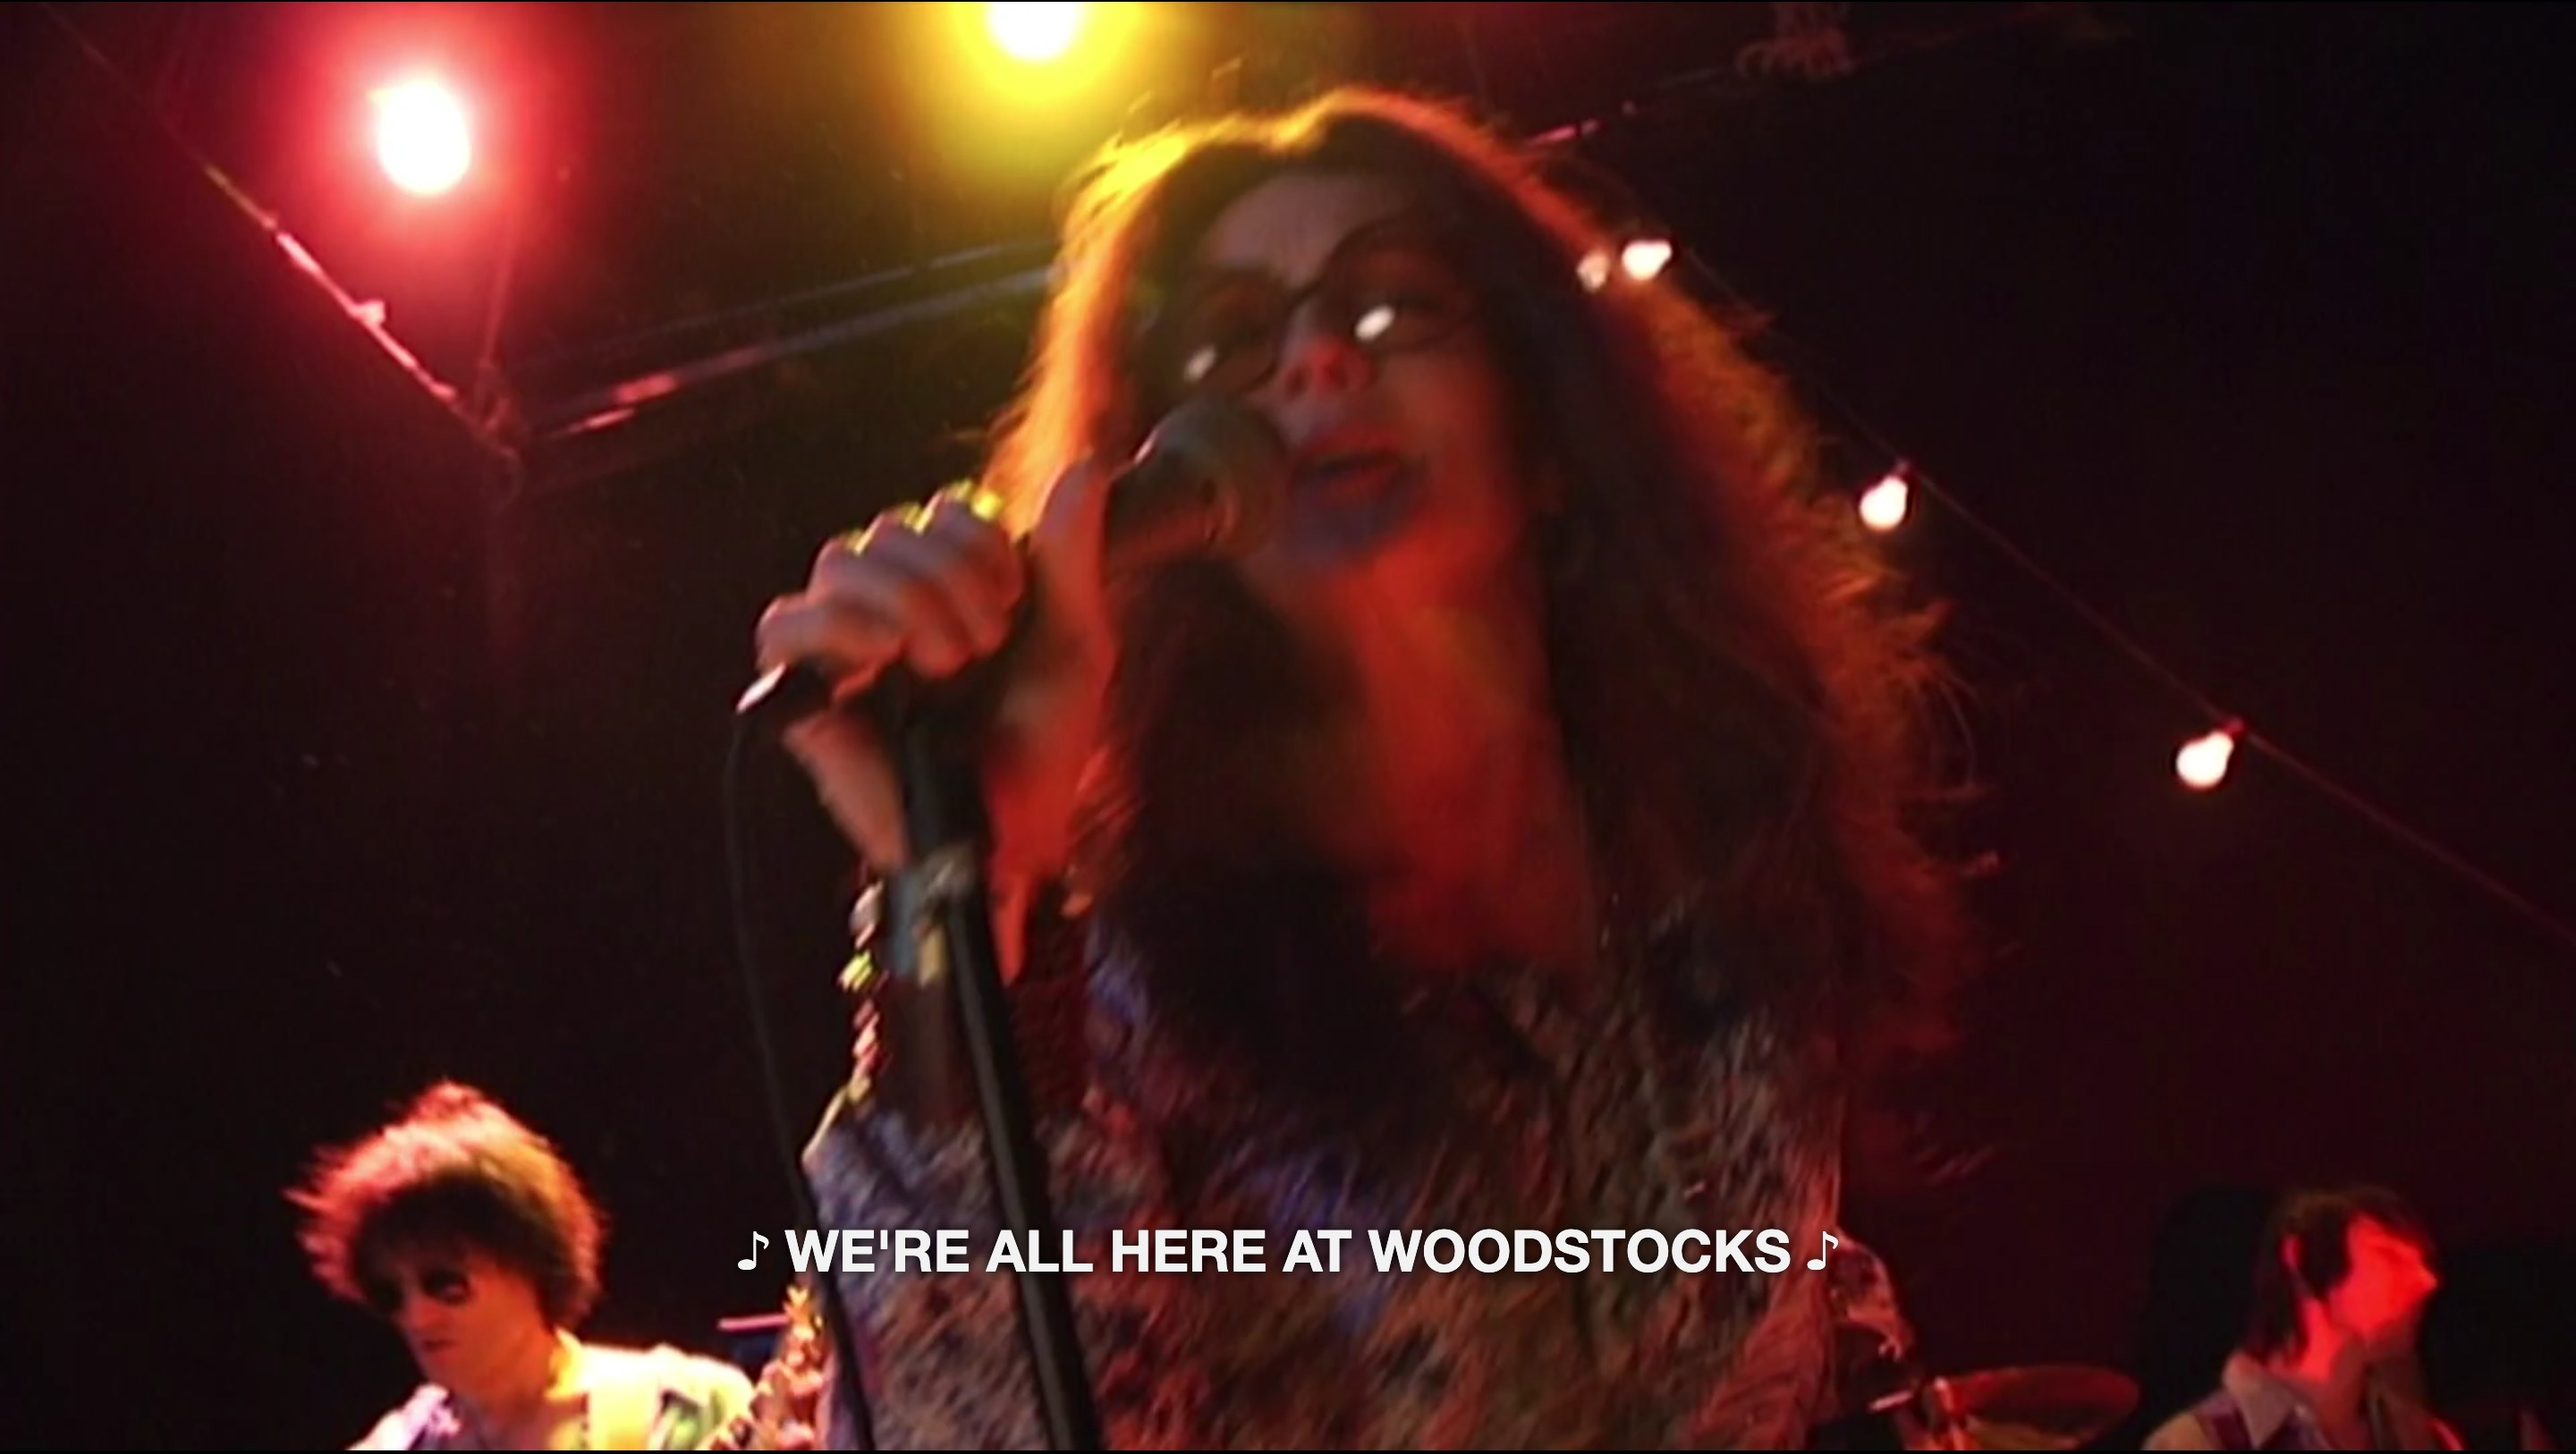 """A woman singing into a microphone with the caption text """"We're all here at Woodstocks"""""""